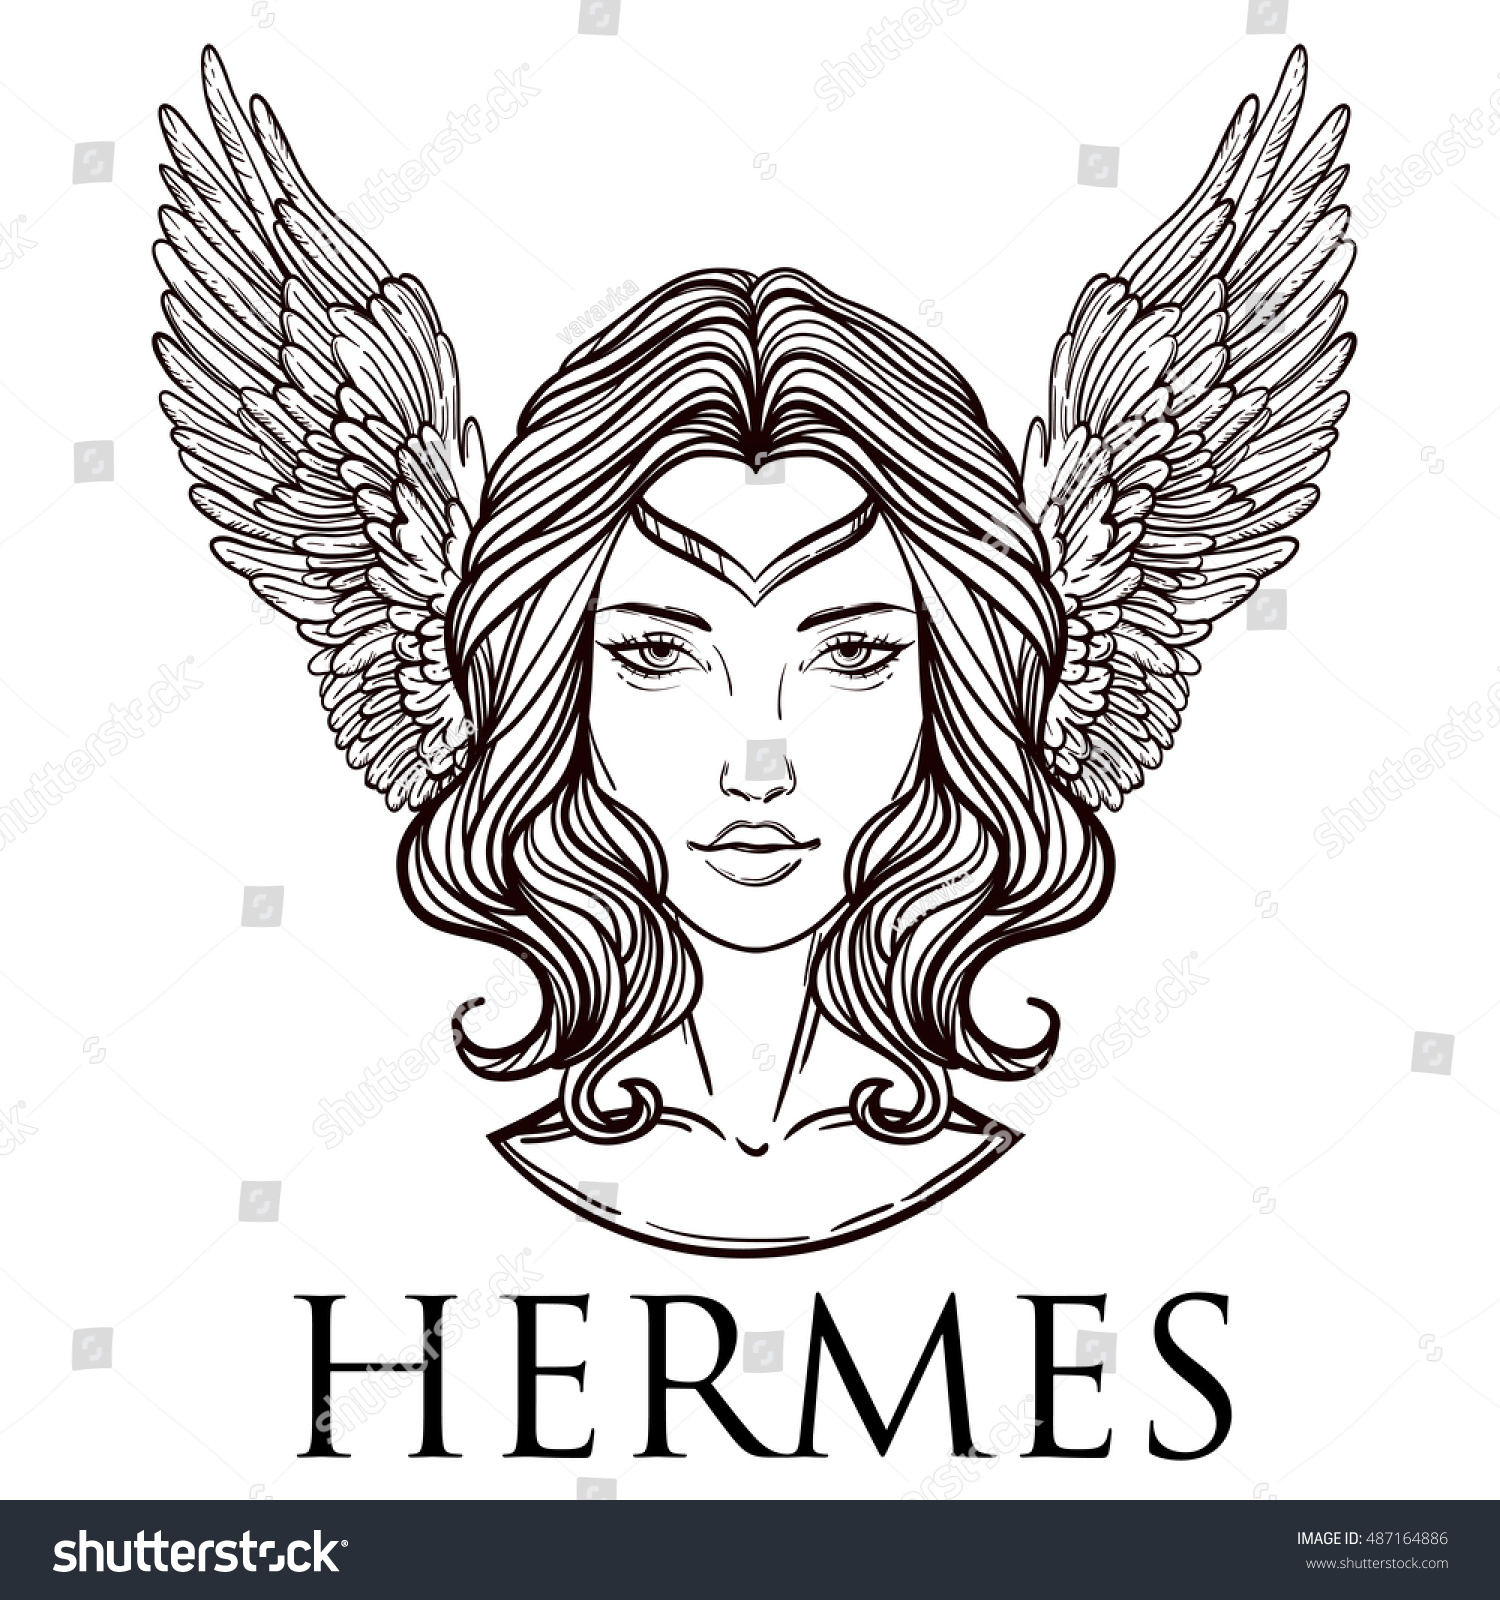 Vector Illustration Greek God Hermes Form Stock Vector ...